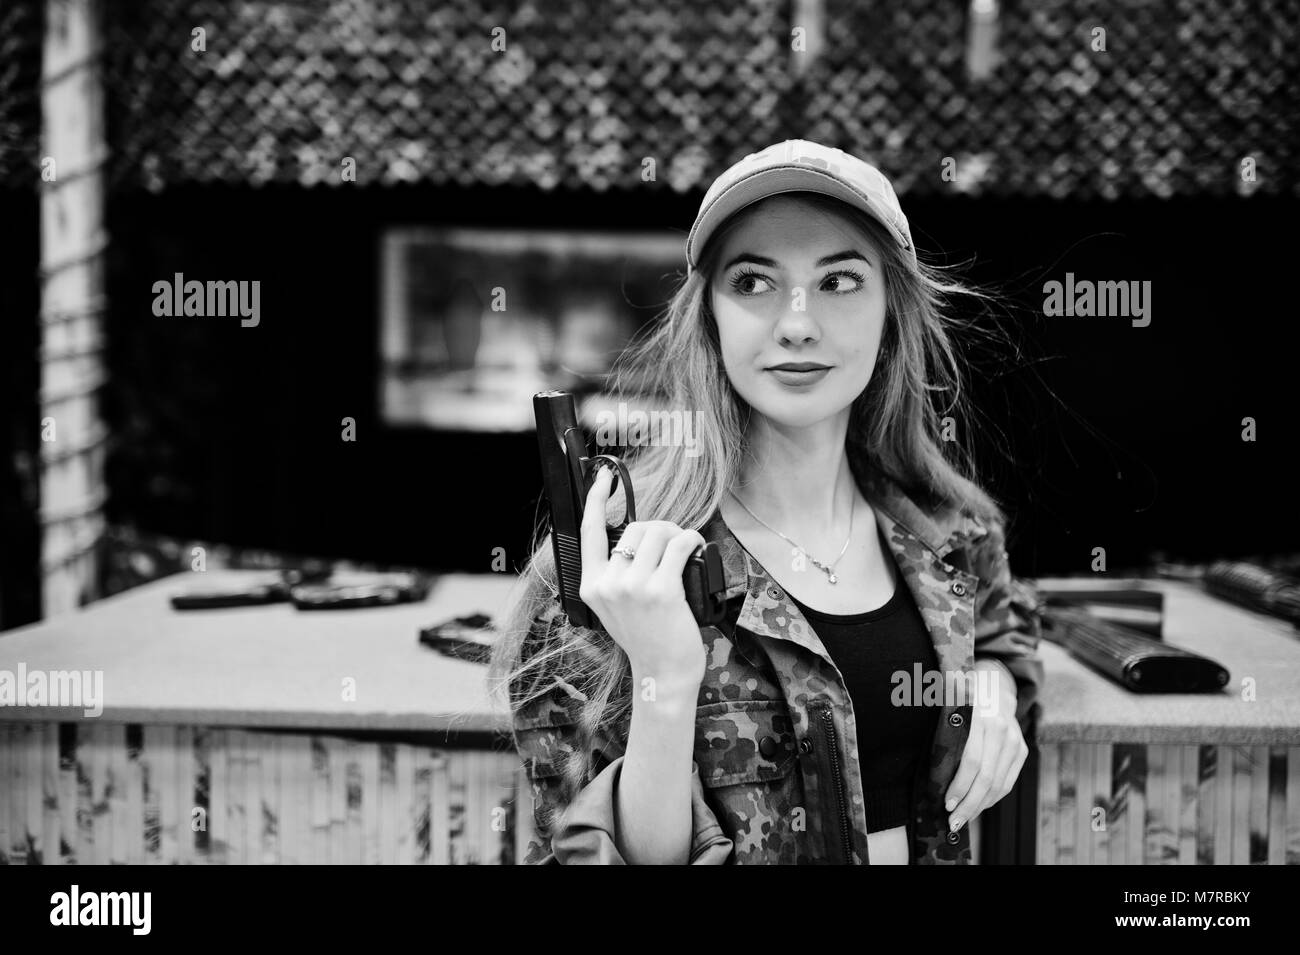 Military girl in camouflage uniform with gun at hand against army background on shooting range. - Stock Image